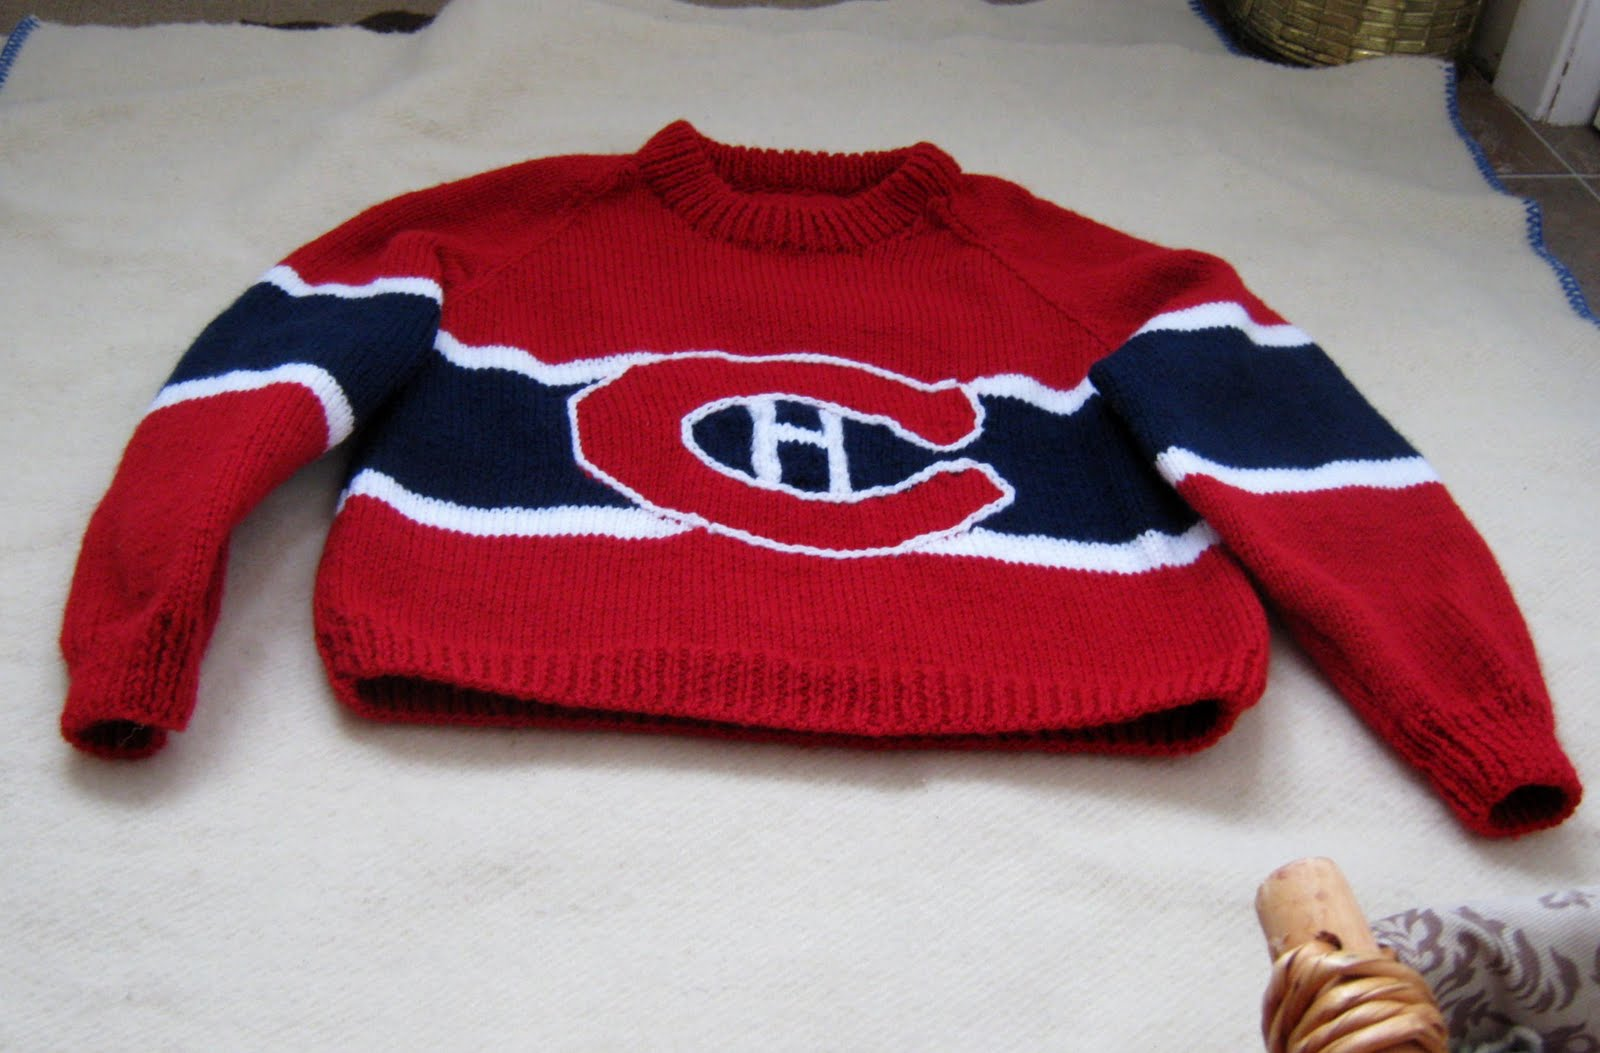 Nanna PEI : The Hockey Sweater